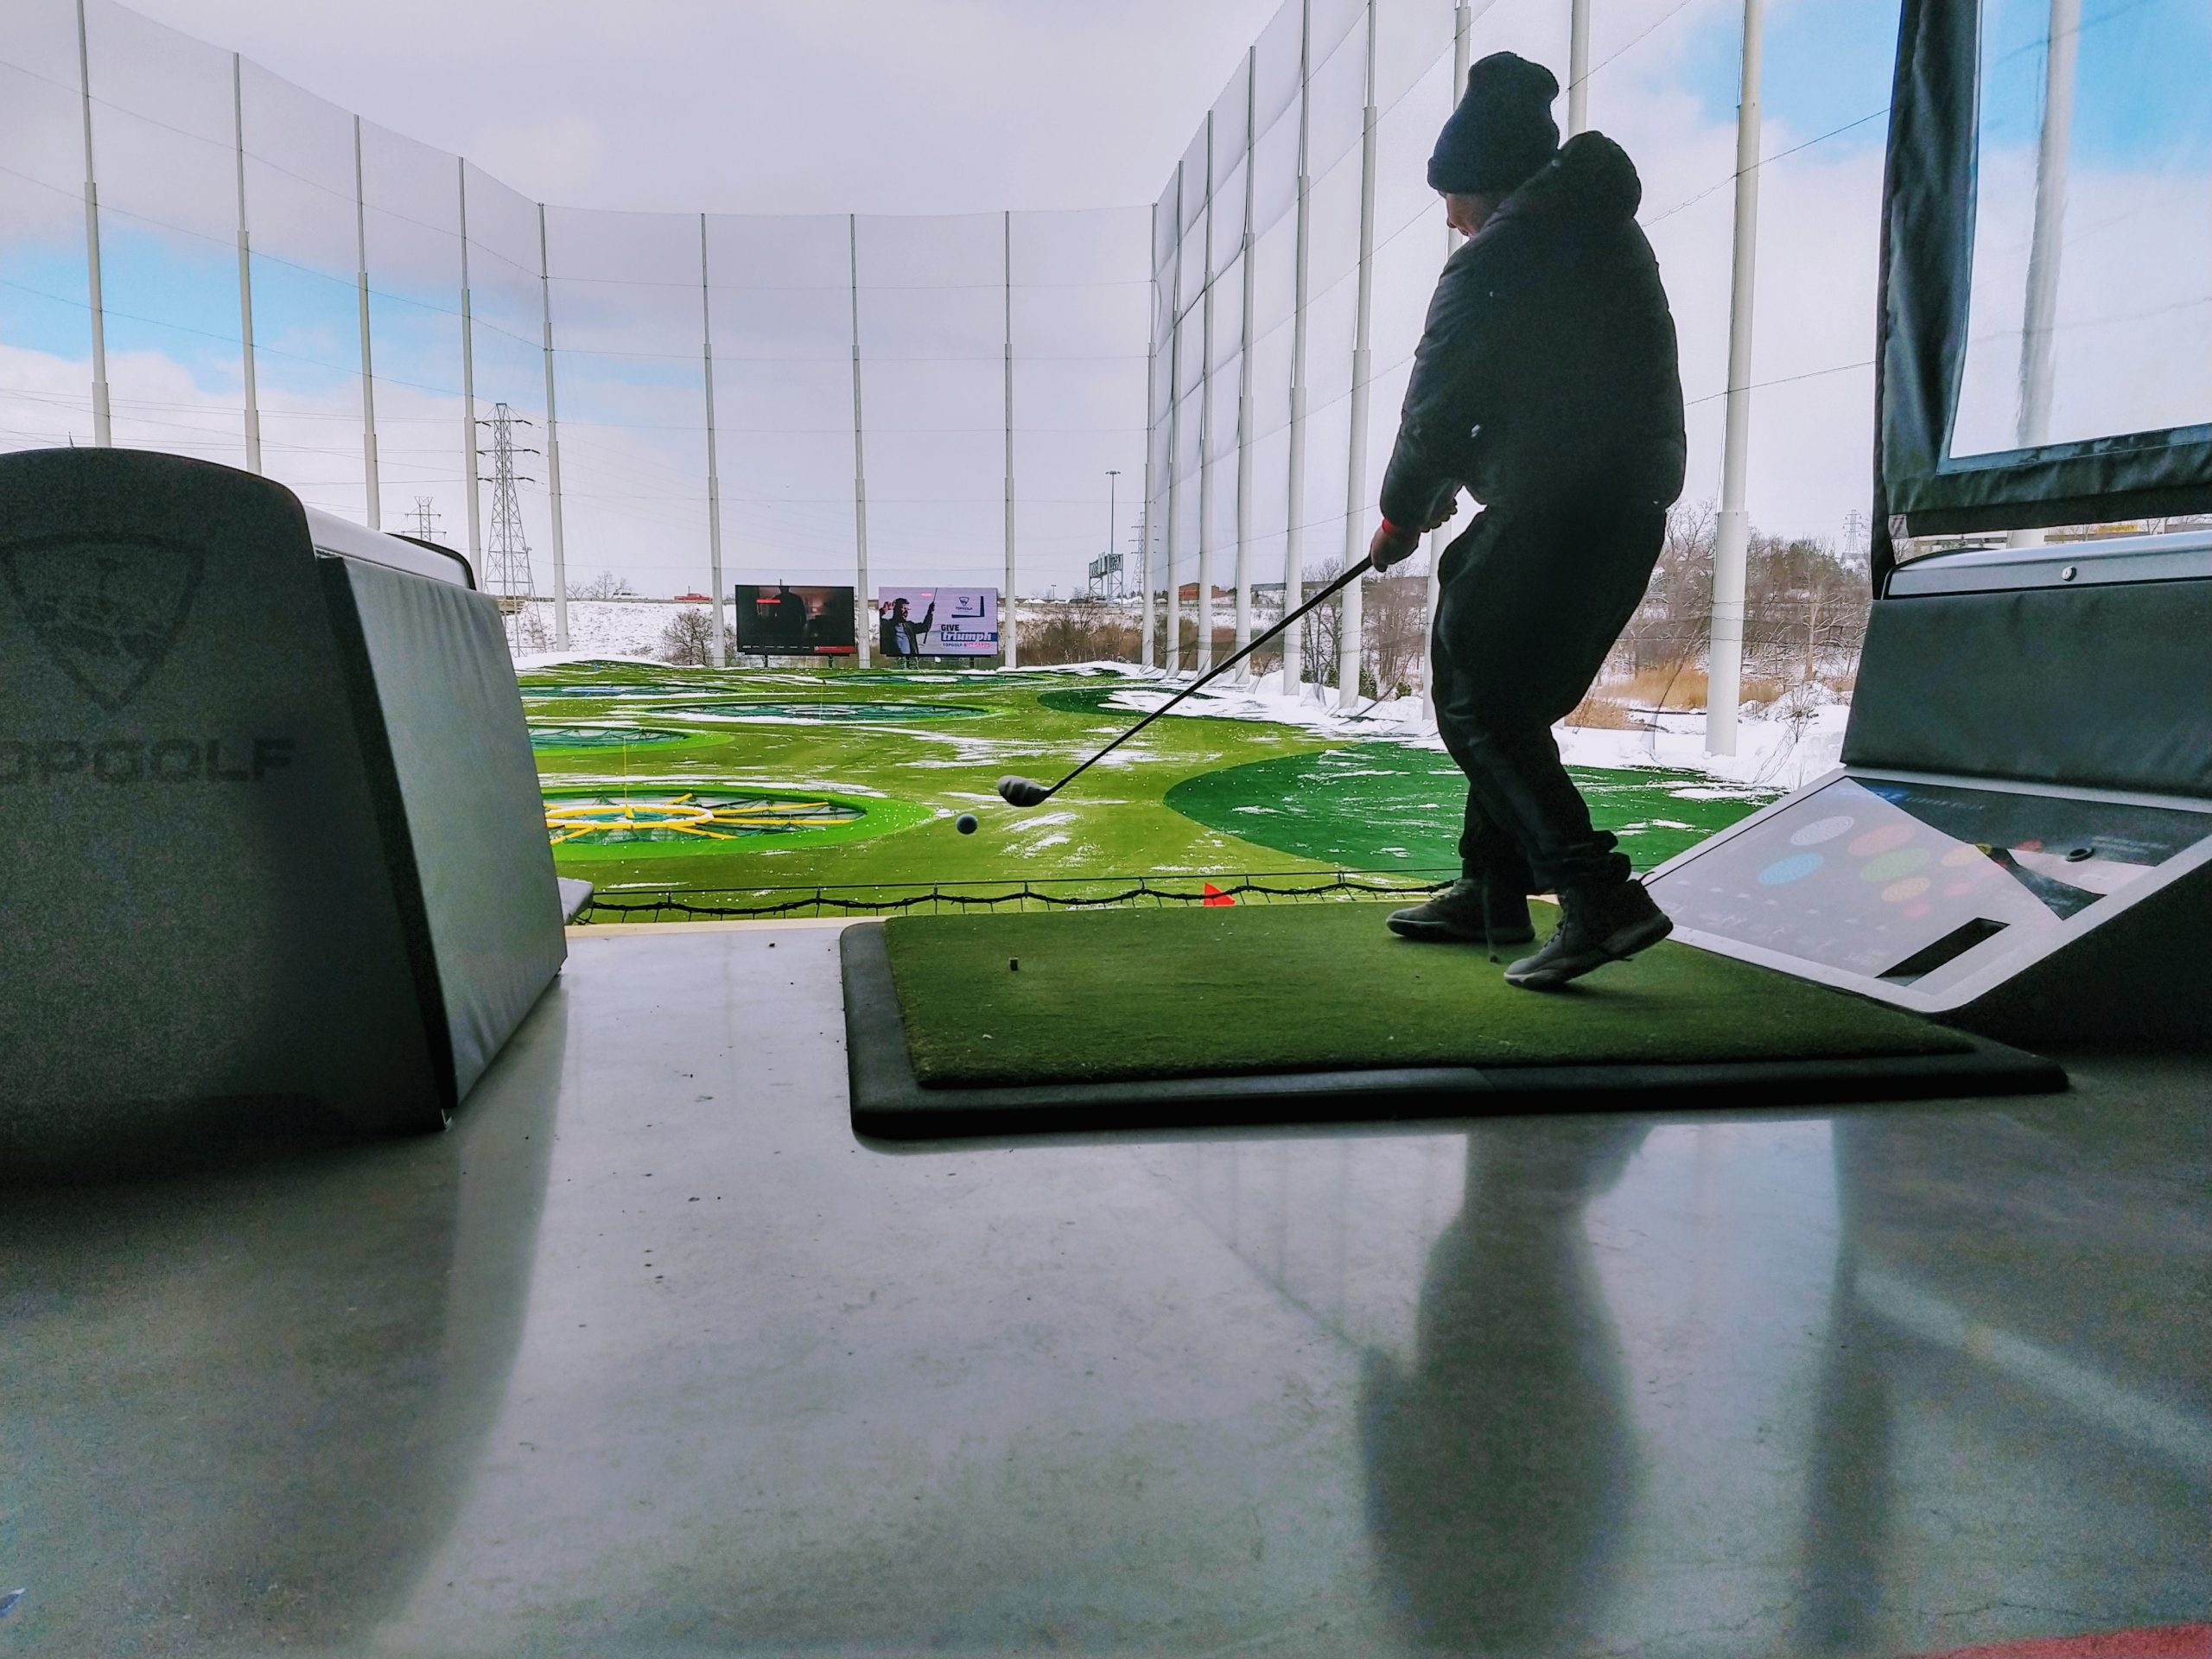 Golfer at driving range wearing winter clothes